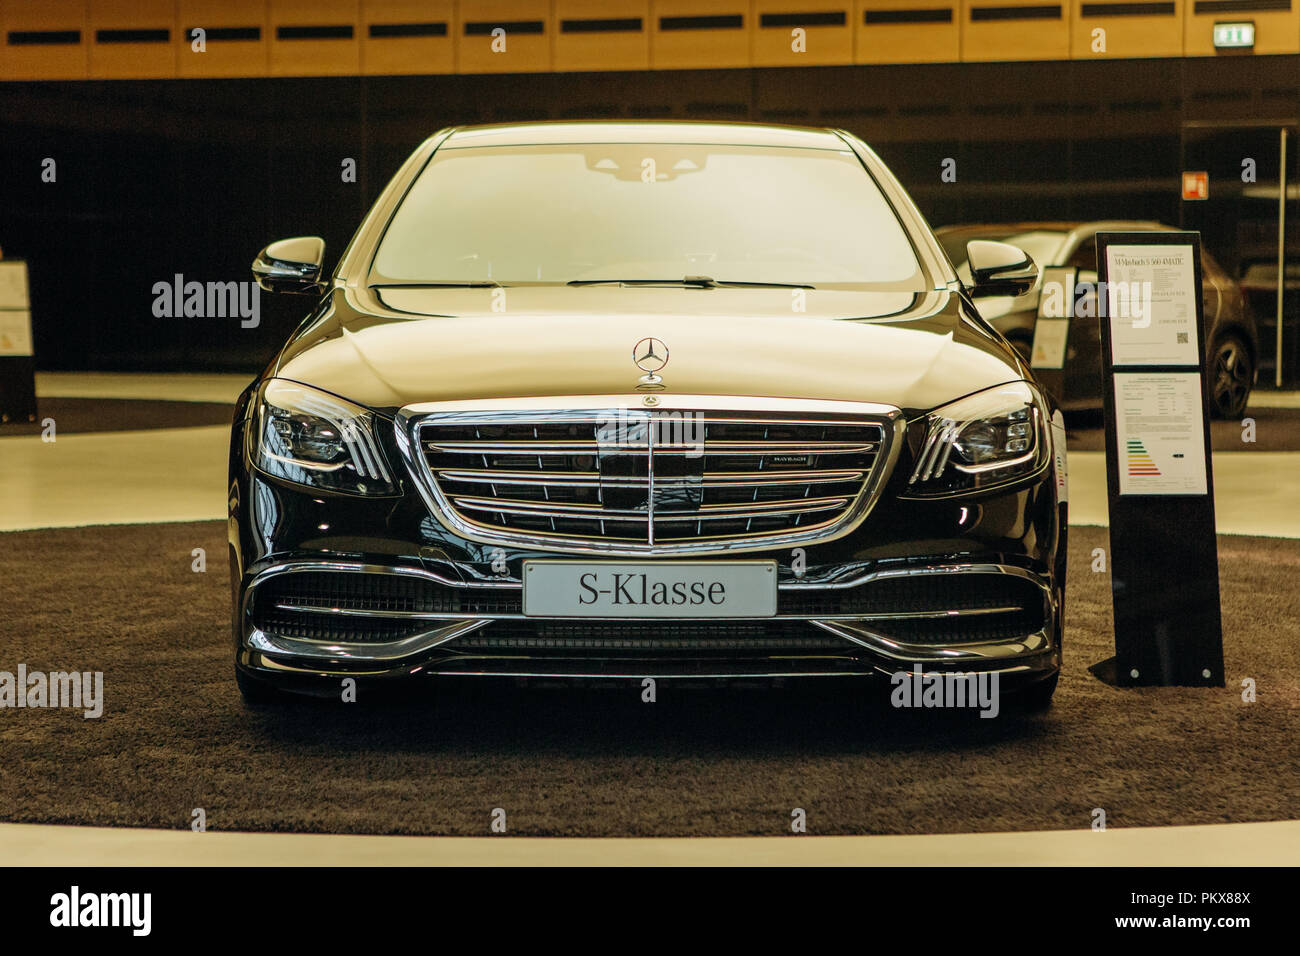 Berlin, August 29, 2018: A close-up of the Mercedes-Maybach car which is exhibited and sold in the official dealer's center in Berlin. Luxury branded expensive car. Stock Photo